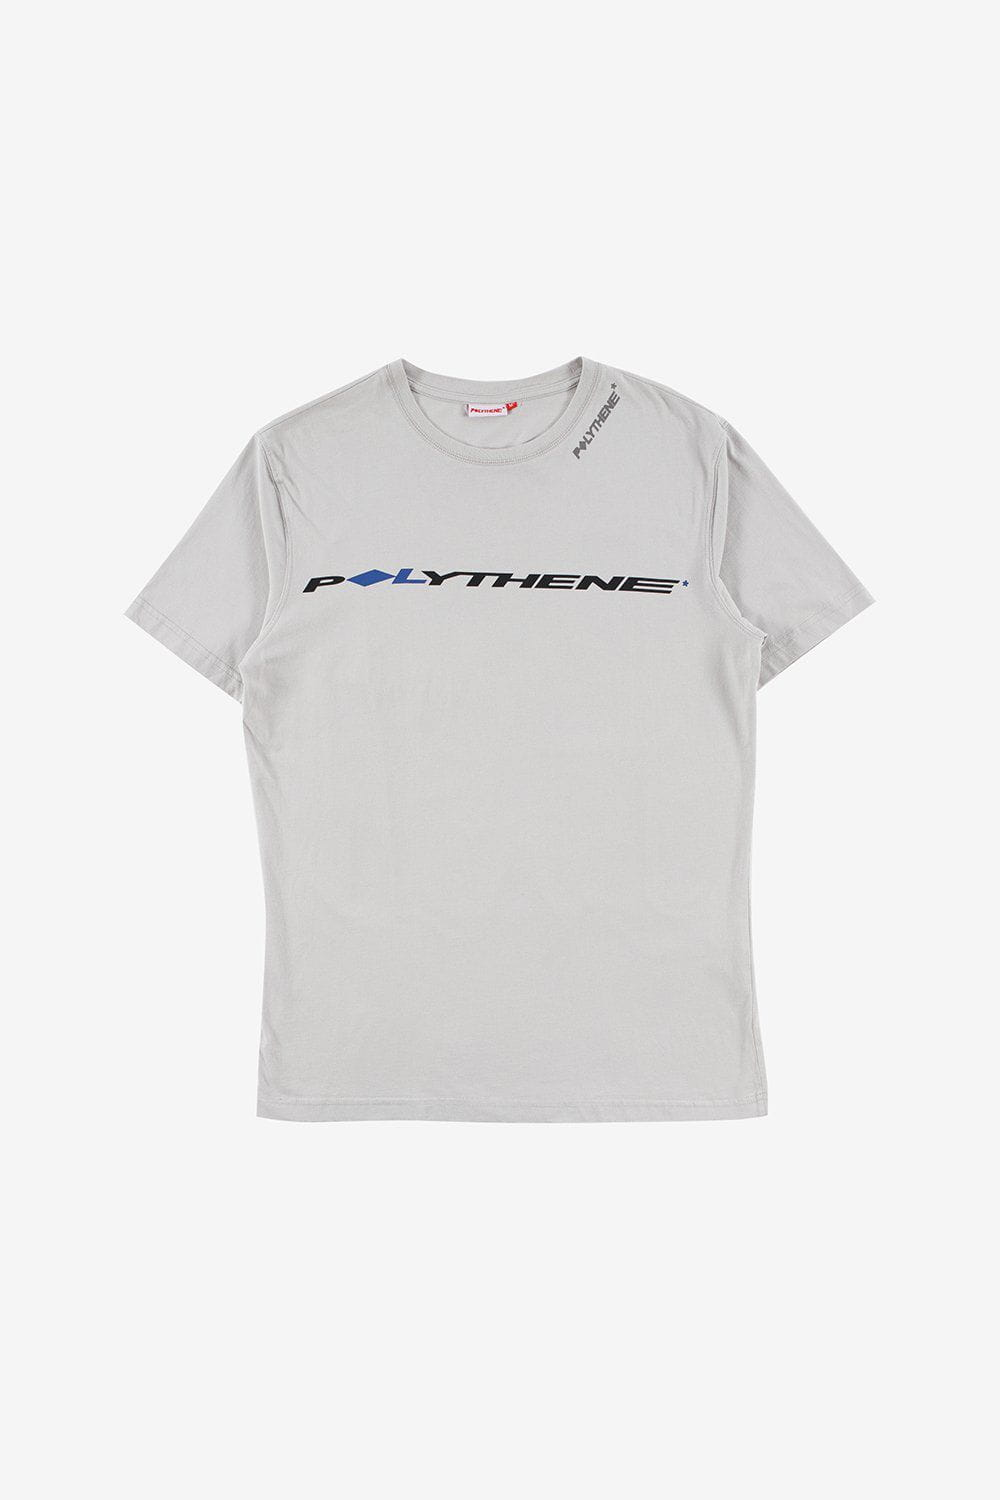 Polythene Optics Apparel Overlayed Nails T-Shirt